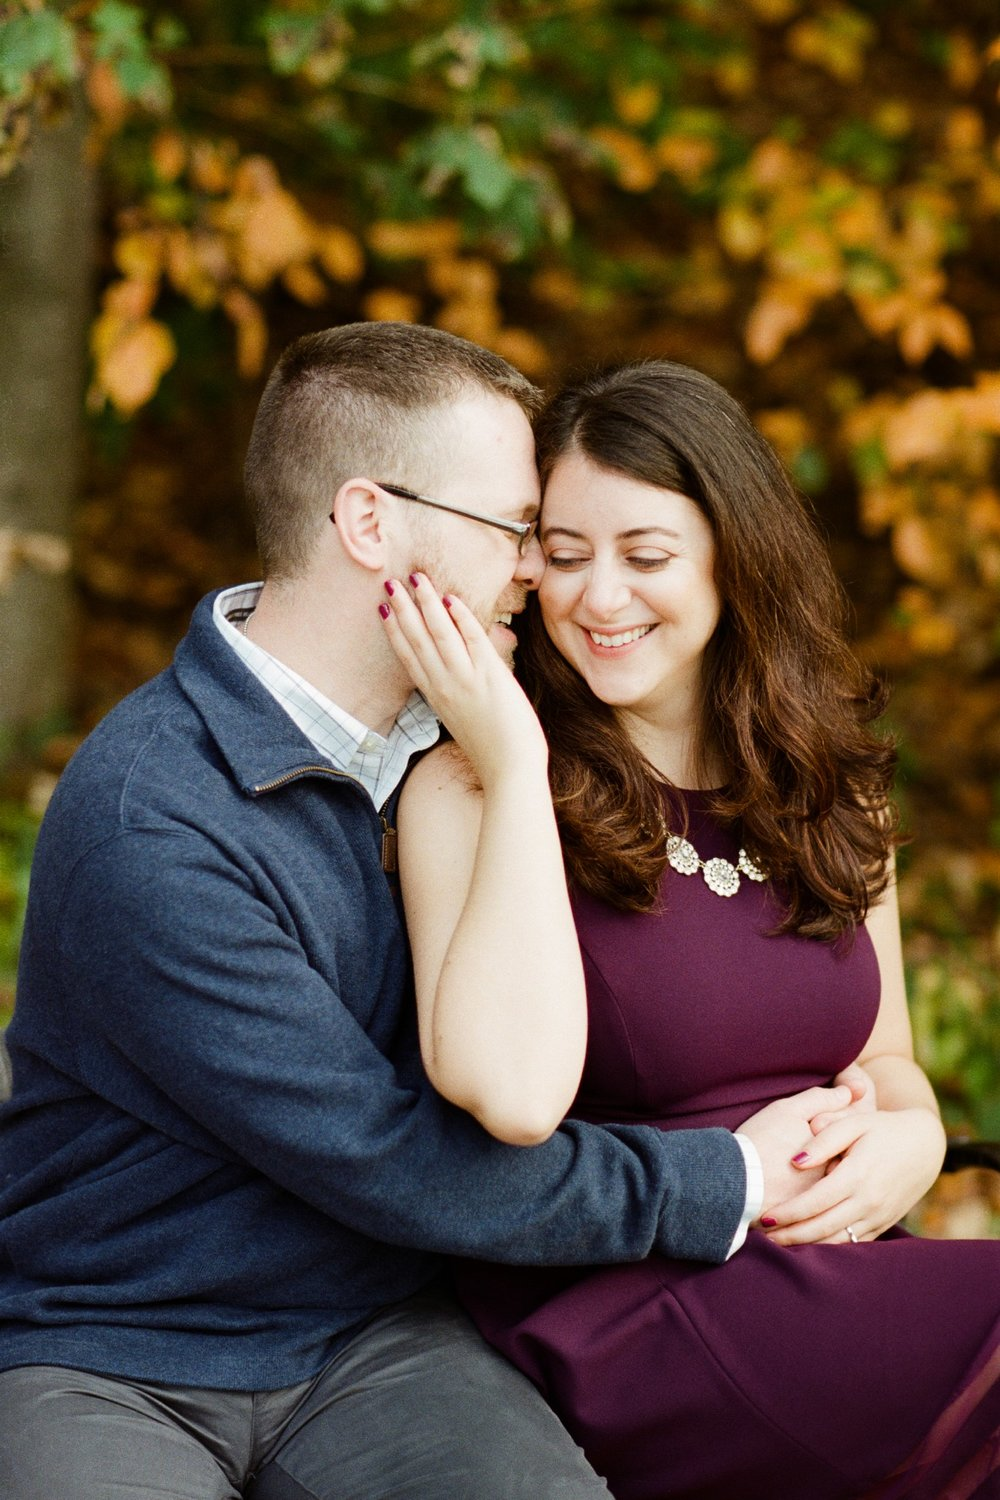 fall_engagement_session_boston_deborah_zoe_00002.JPG